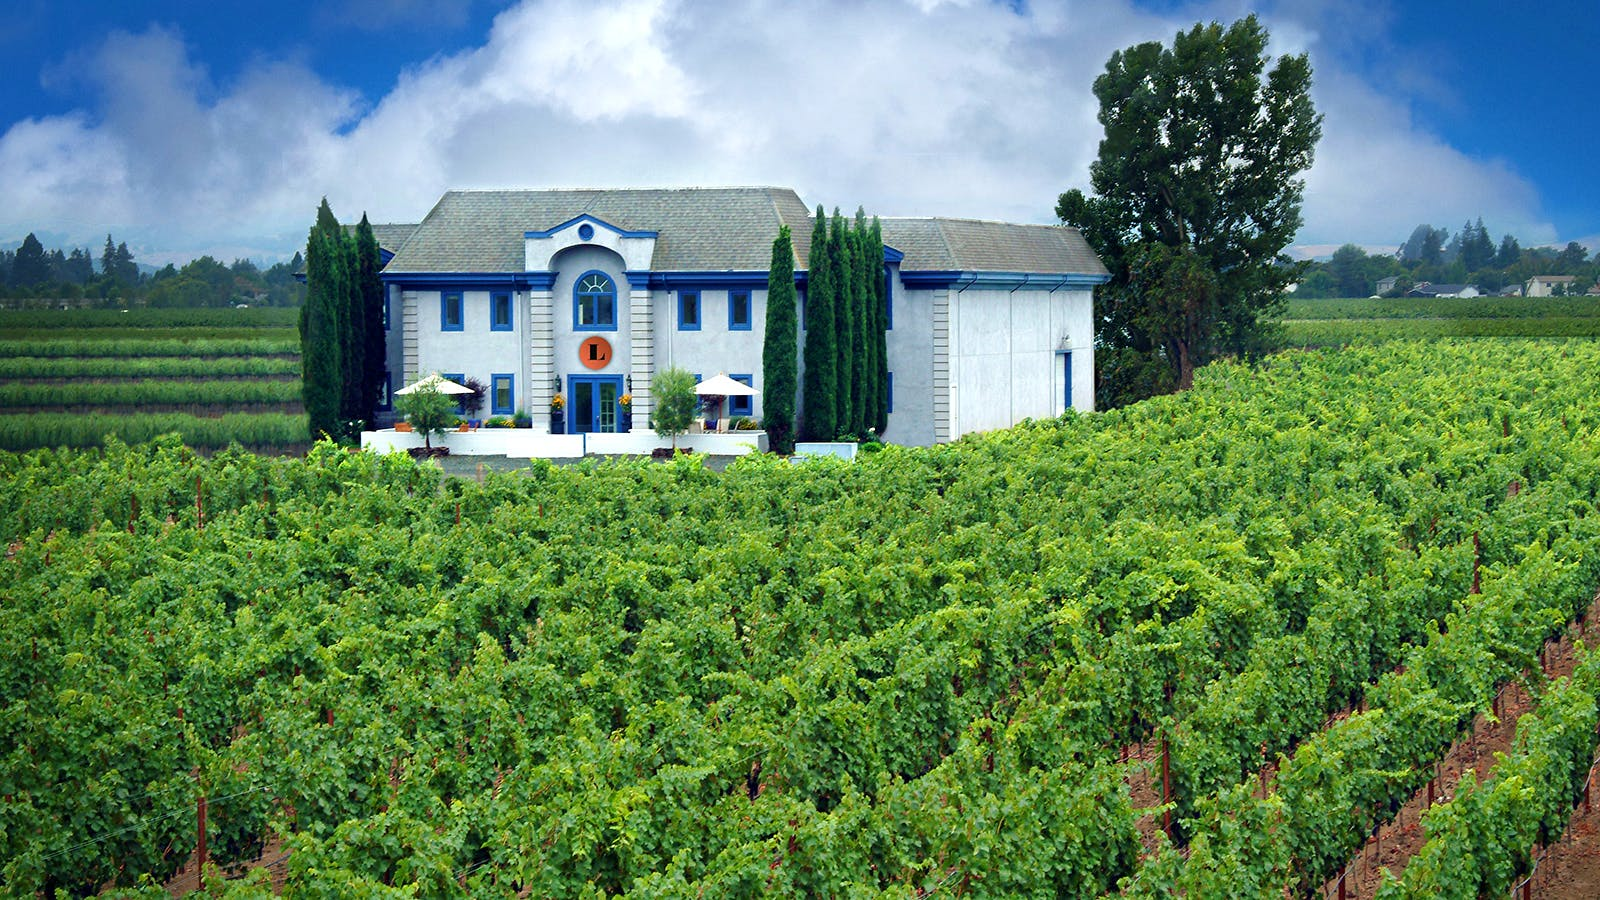 Exclusive: Paso Robles' Justin Vineyards and Winery Buys Napa's Lewis Cellars